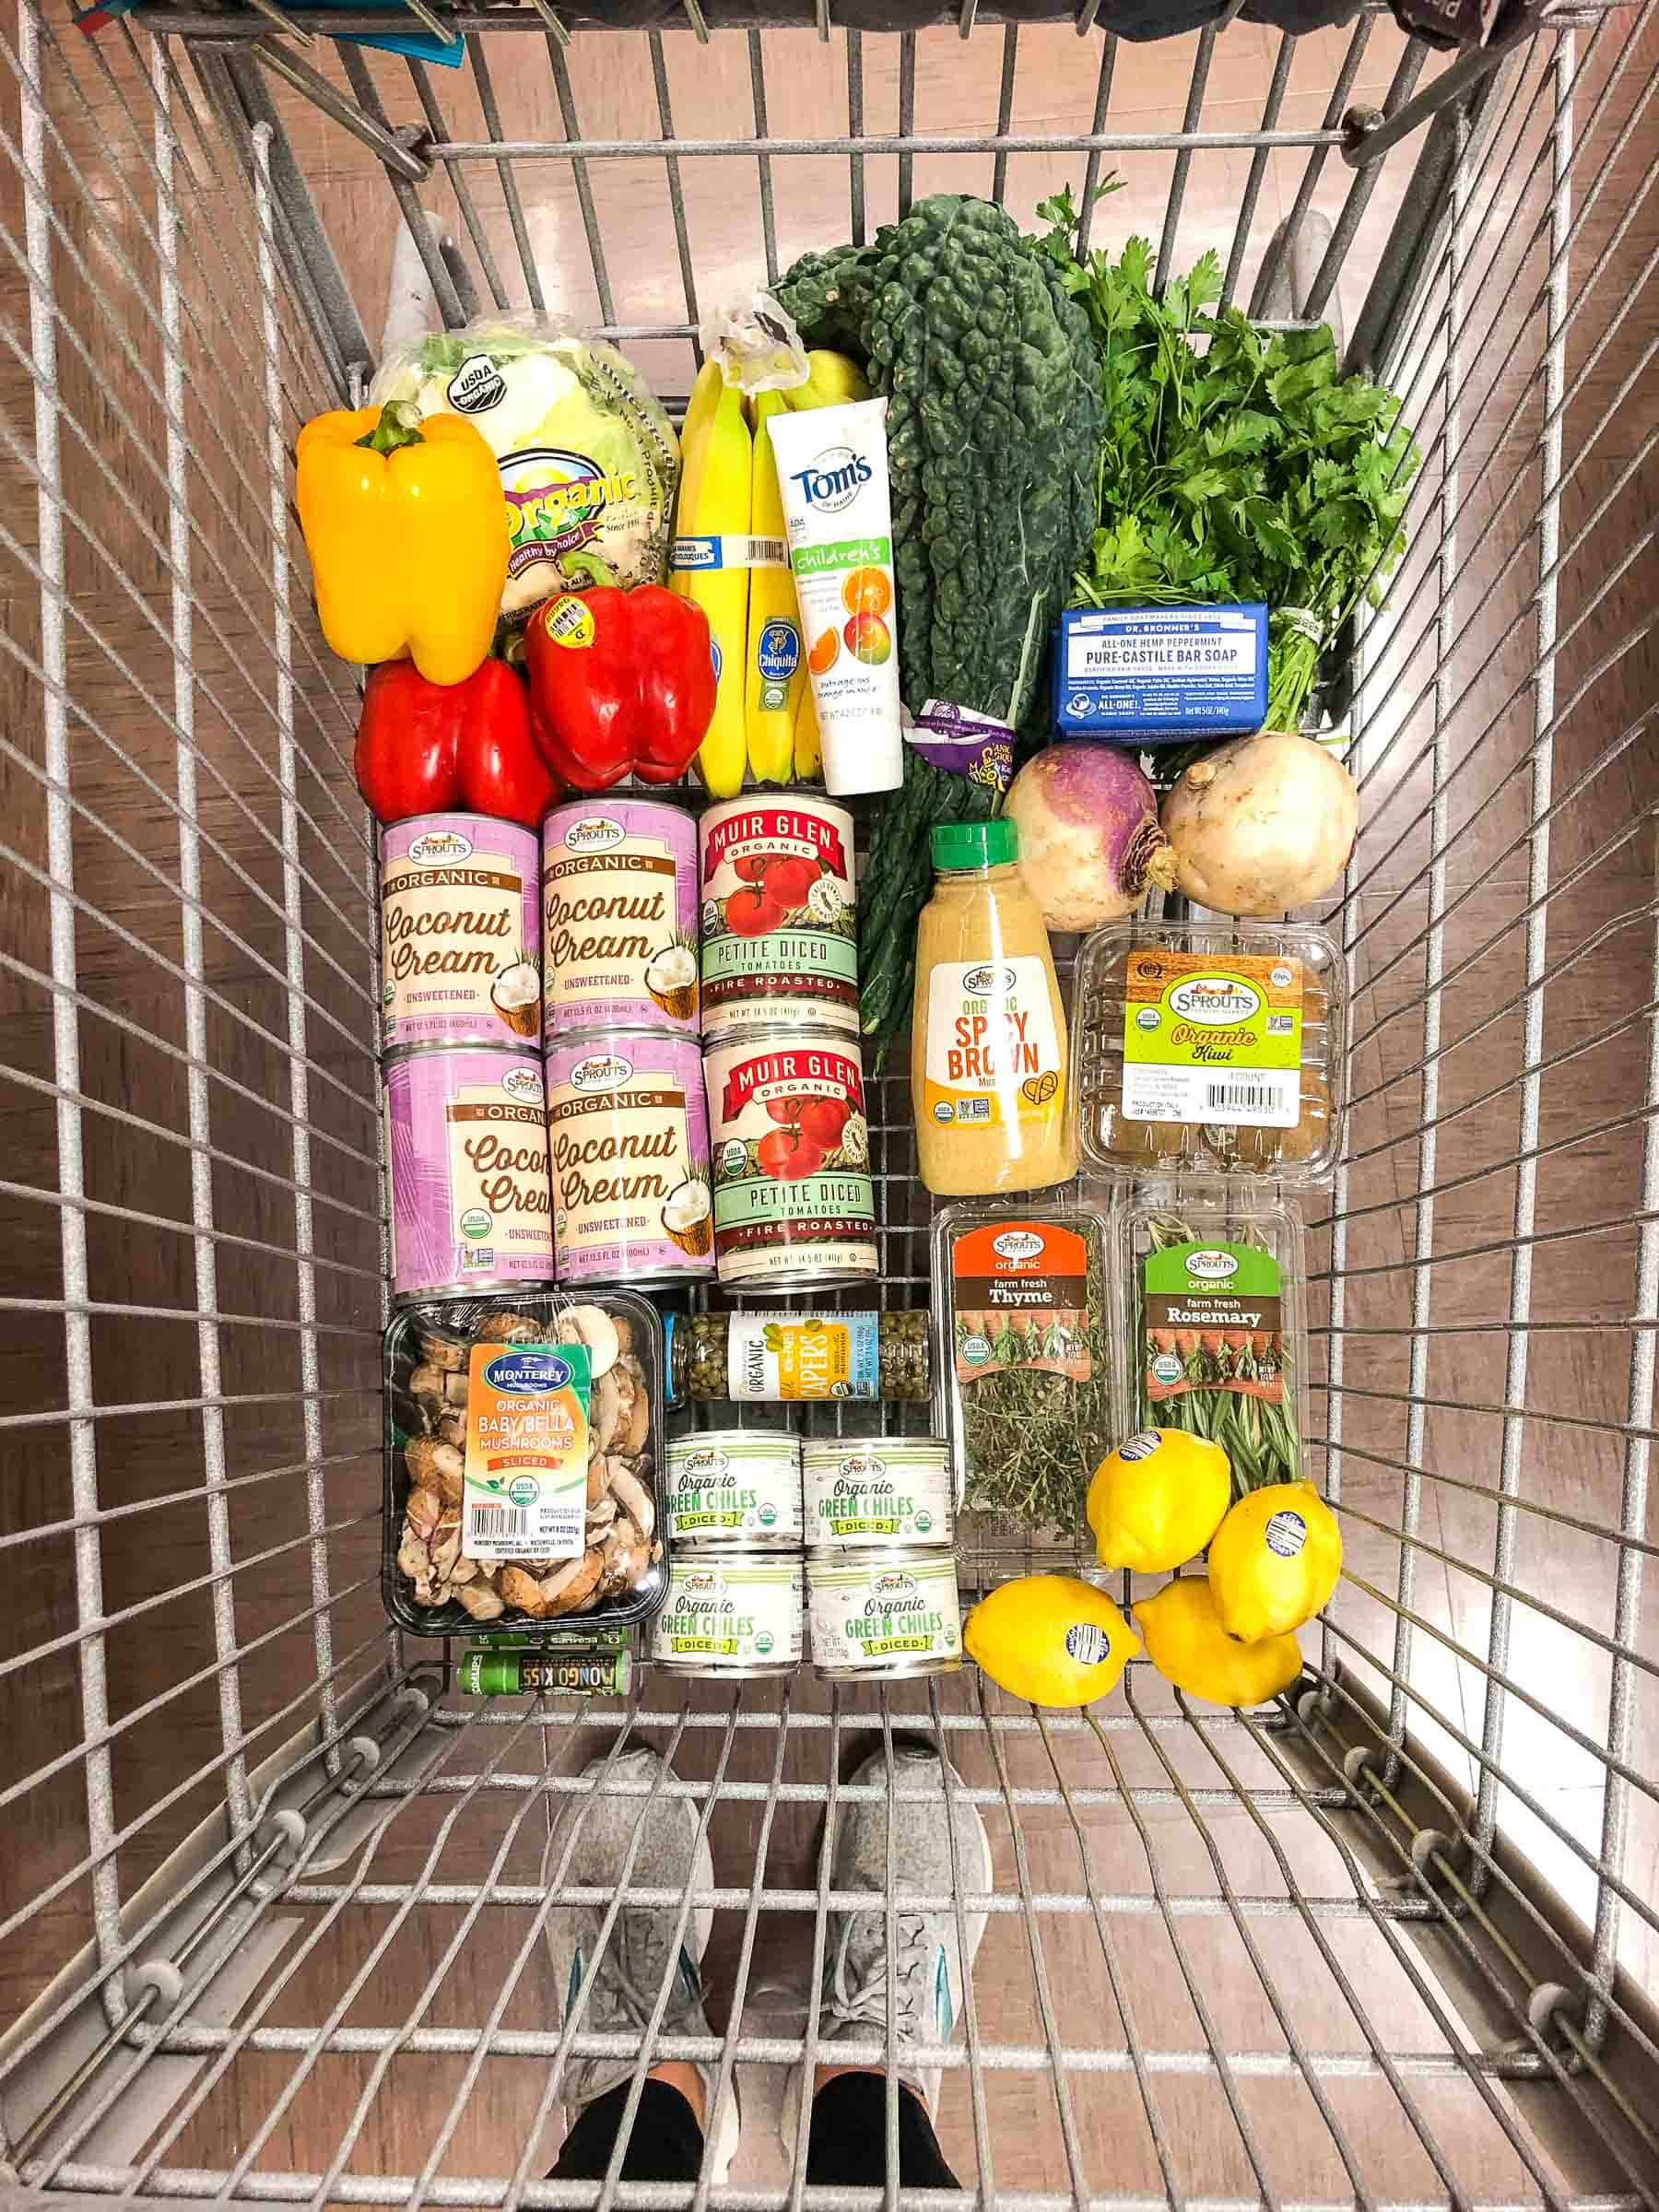 whole30 keto grocery haul groceries in a grocery cart